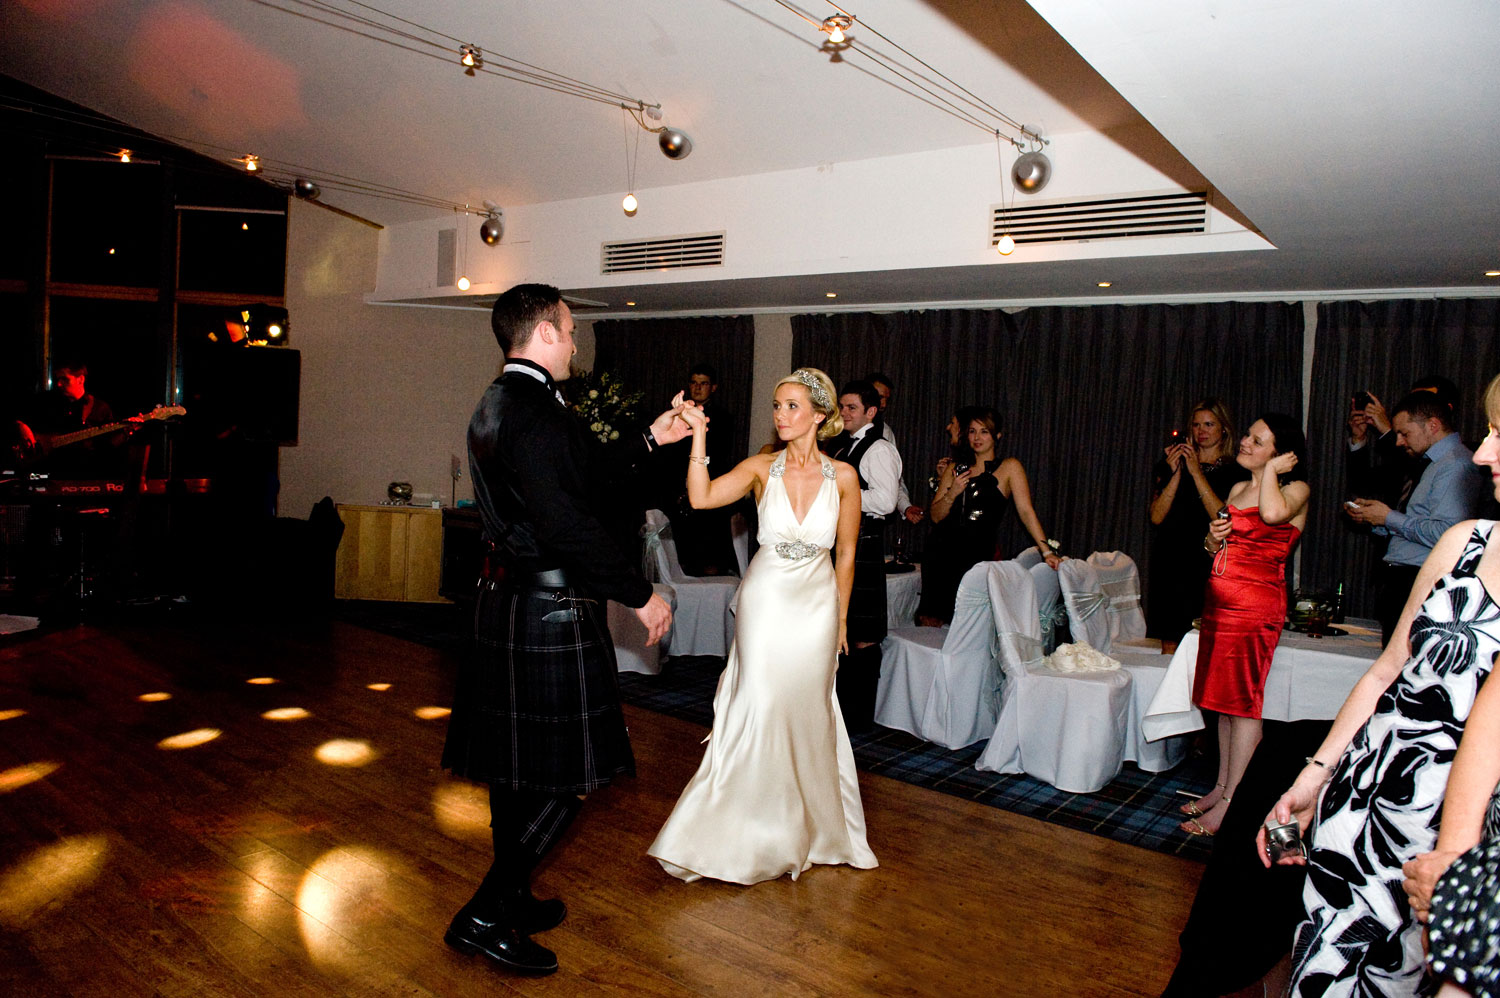 Wedding Dance at Lodge on Loch Lomond